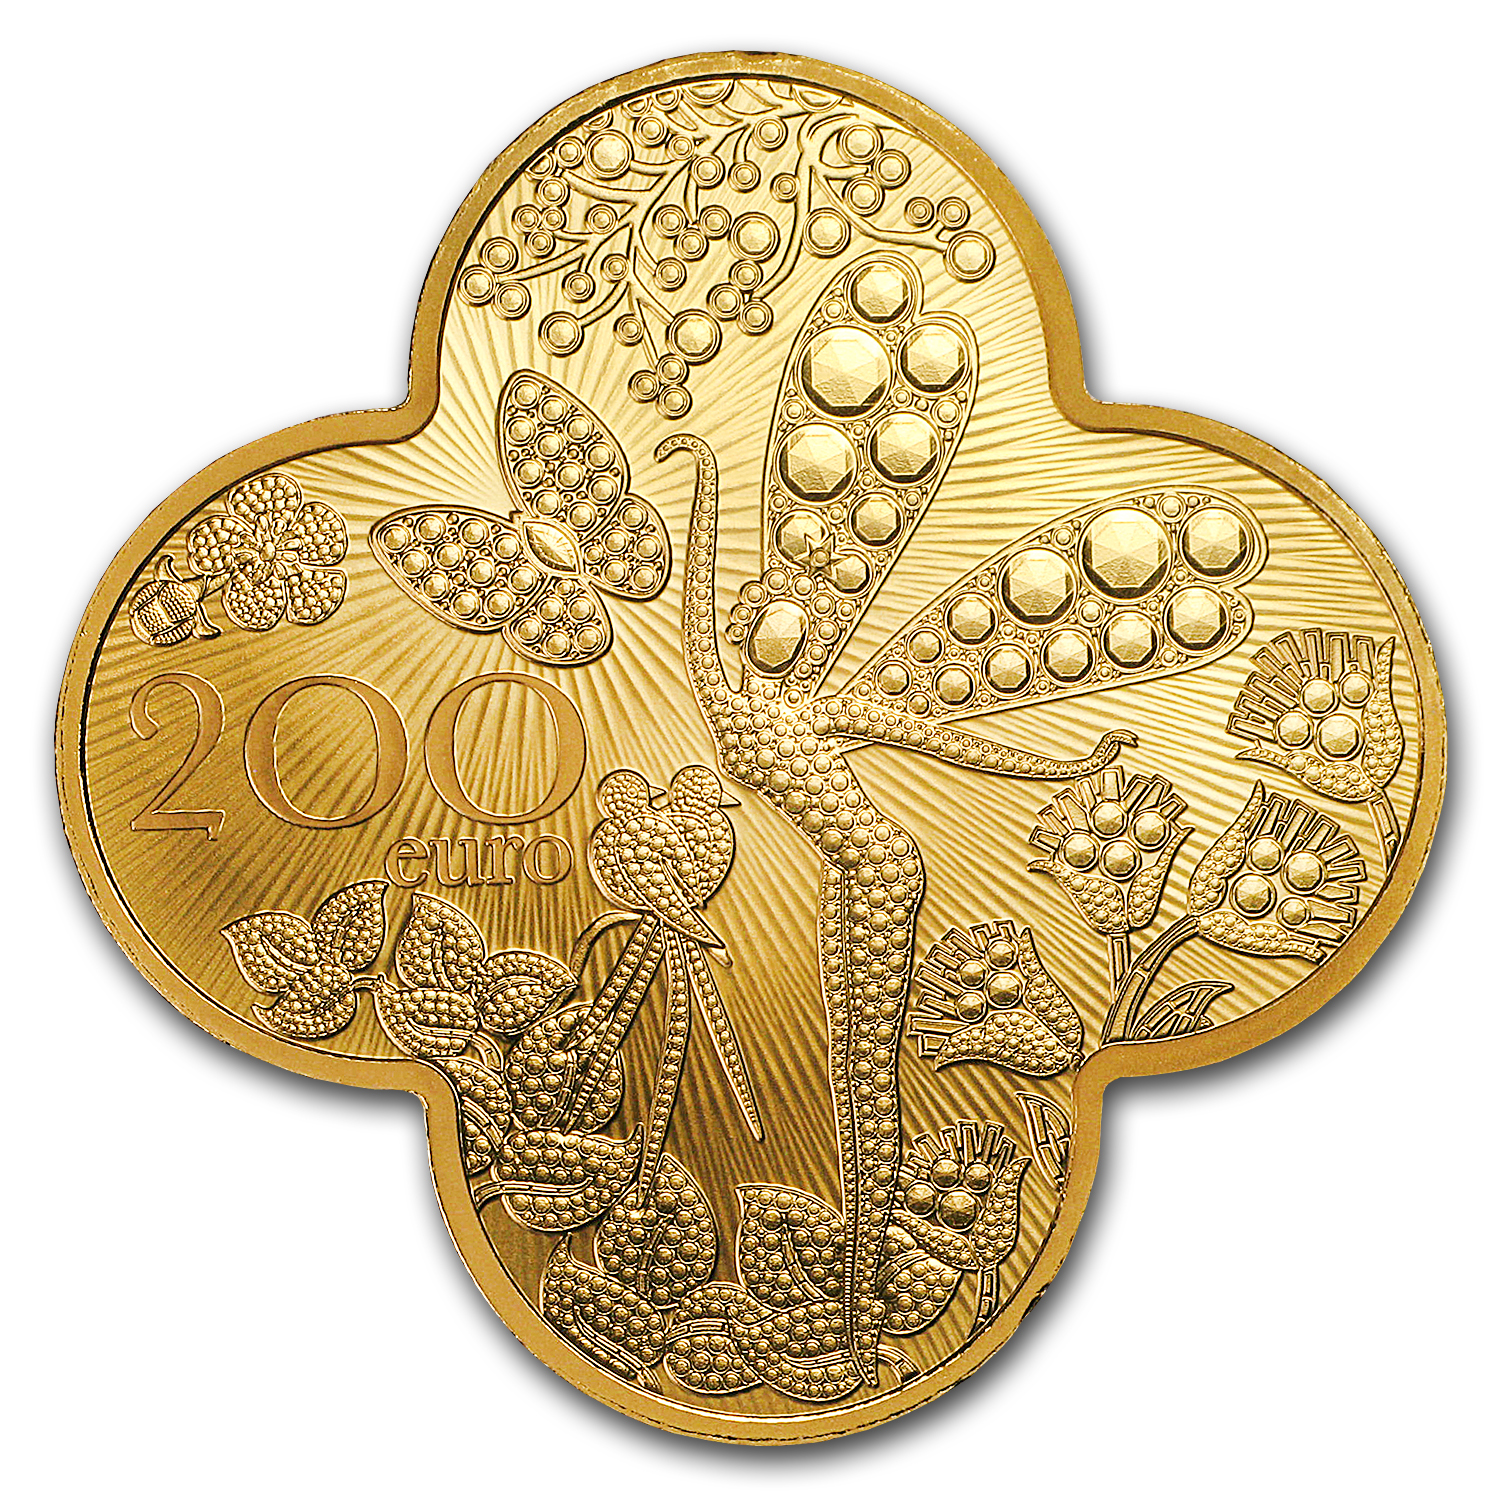 2016 1 oz Proof Gold €200 Excellence Series (Van Cleef & Arpels)